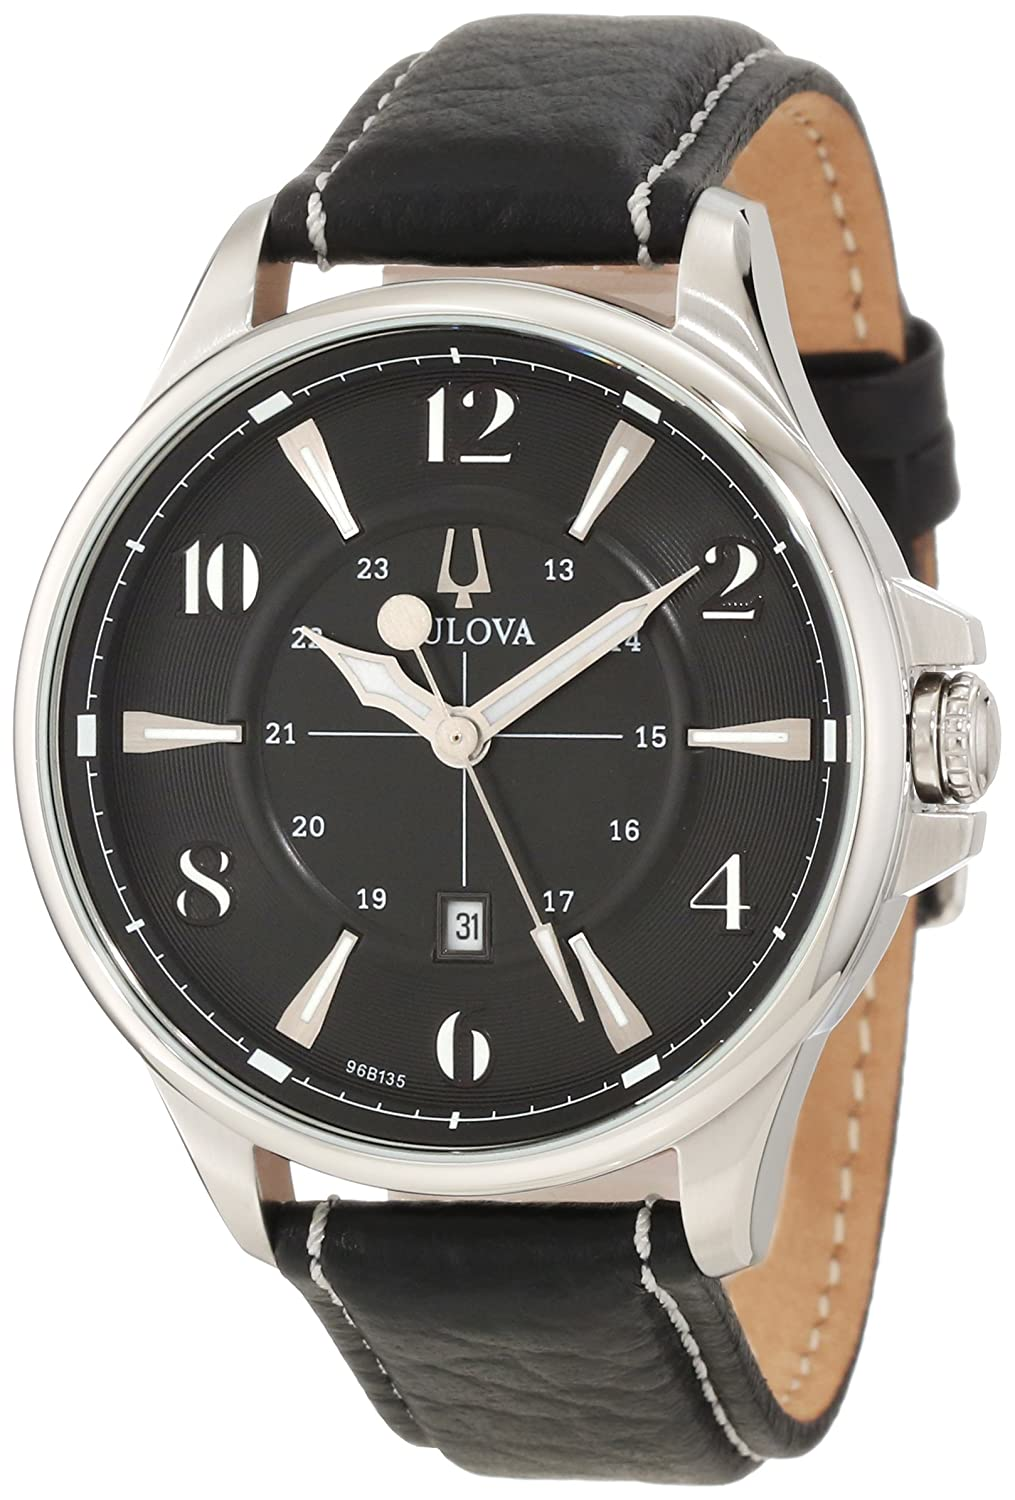 Bulova Men&#8217;s 96B135 Adventurer Strap Watch $112.08